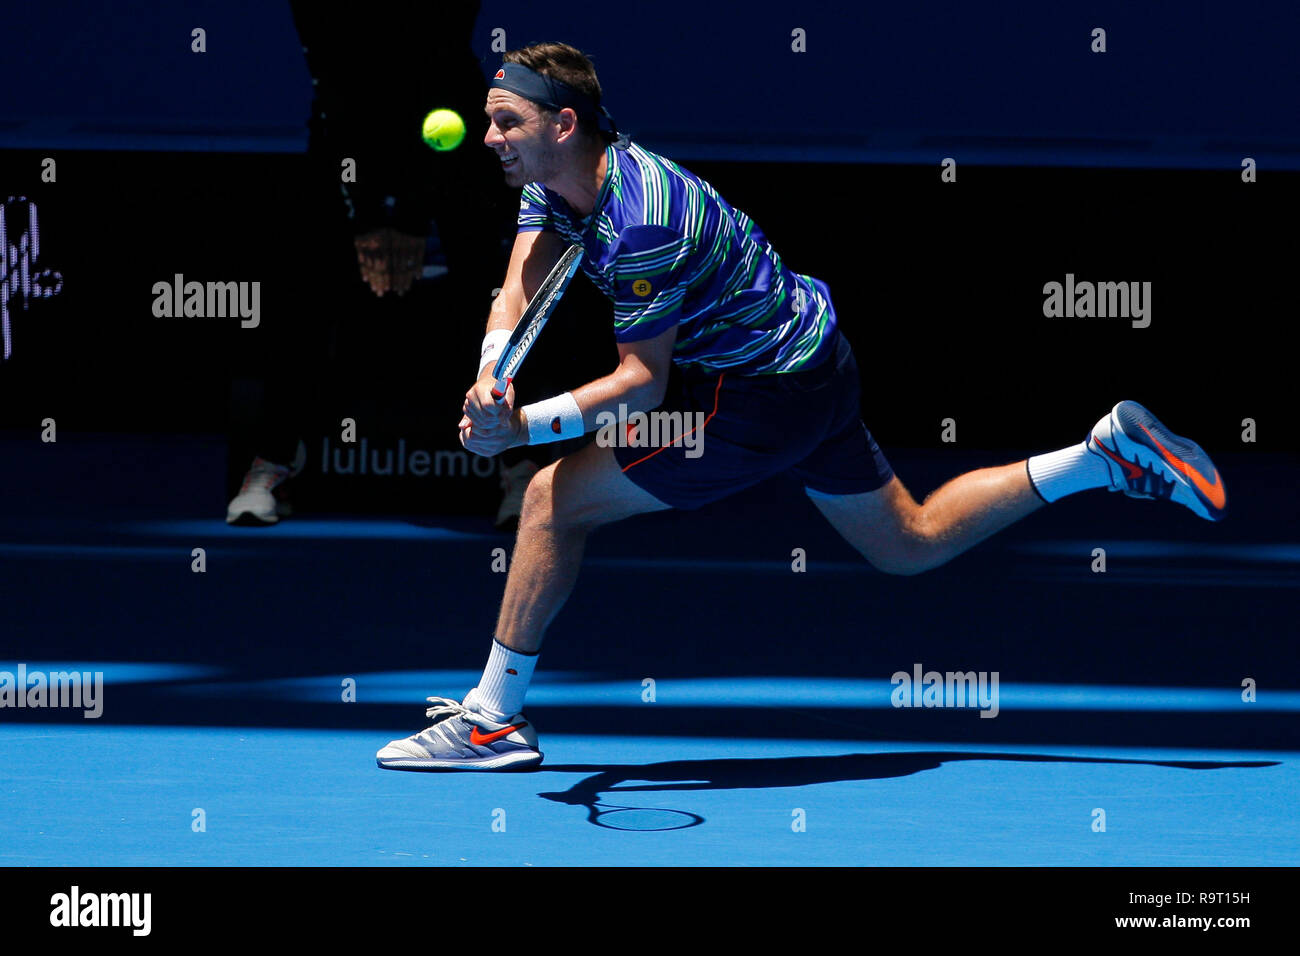 RAC Arena, Perth, Australia. 29th Dec, 2018. Hopman Cup Tennis, sponsored by Mastercard; Cameron Norrie of Team Great Britain plays a running backhand shot against Stefanos Tsitsipas of Team Greece Credit: Action Plus Sports/Alamy Live News - Stock Image